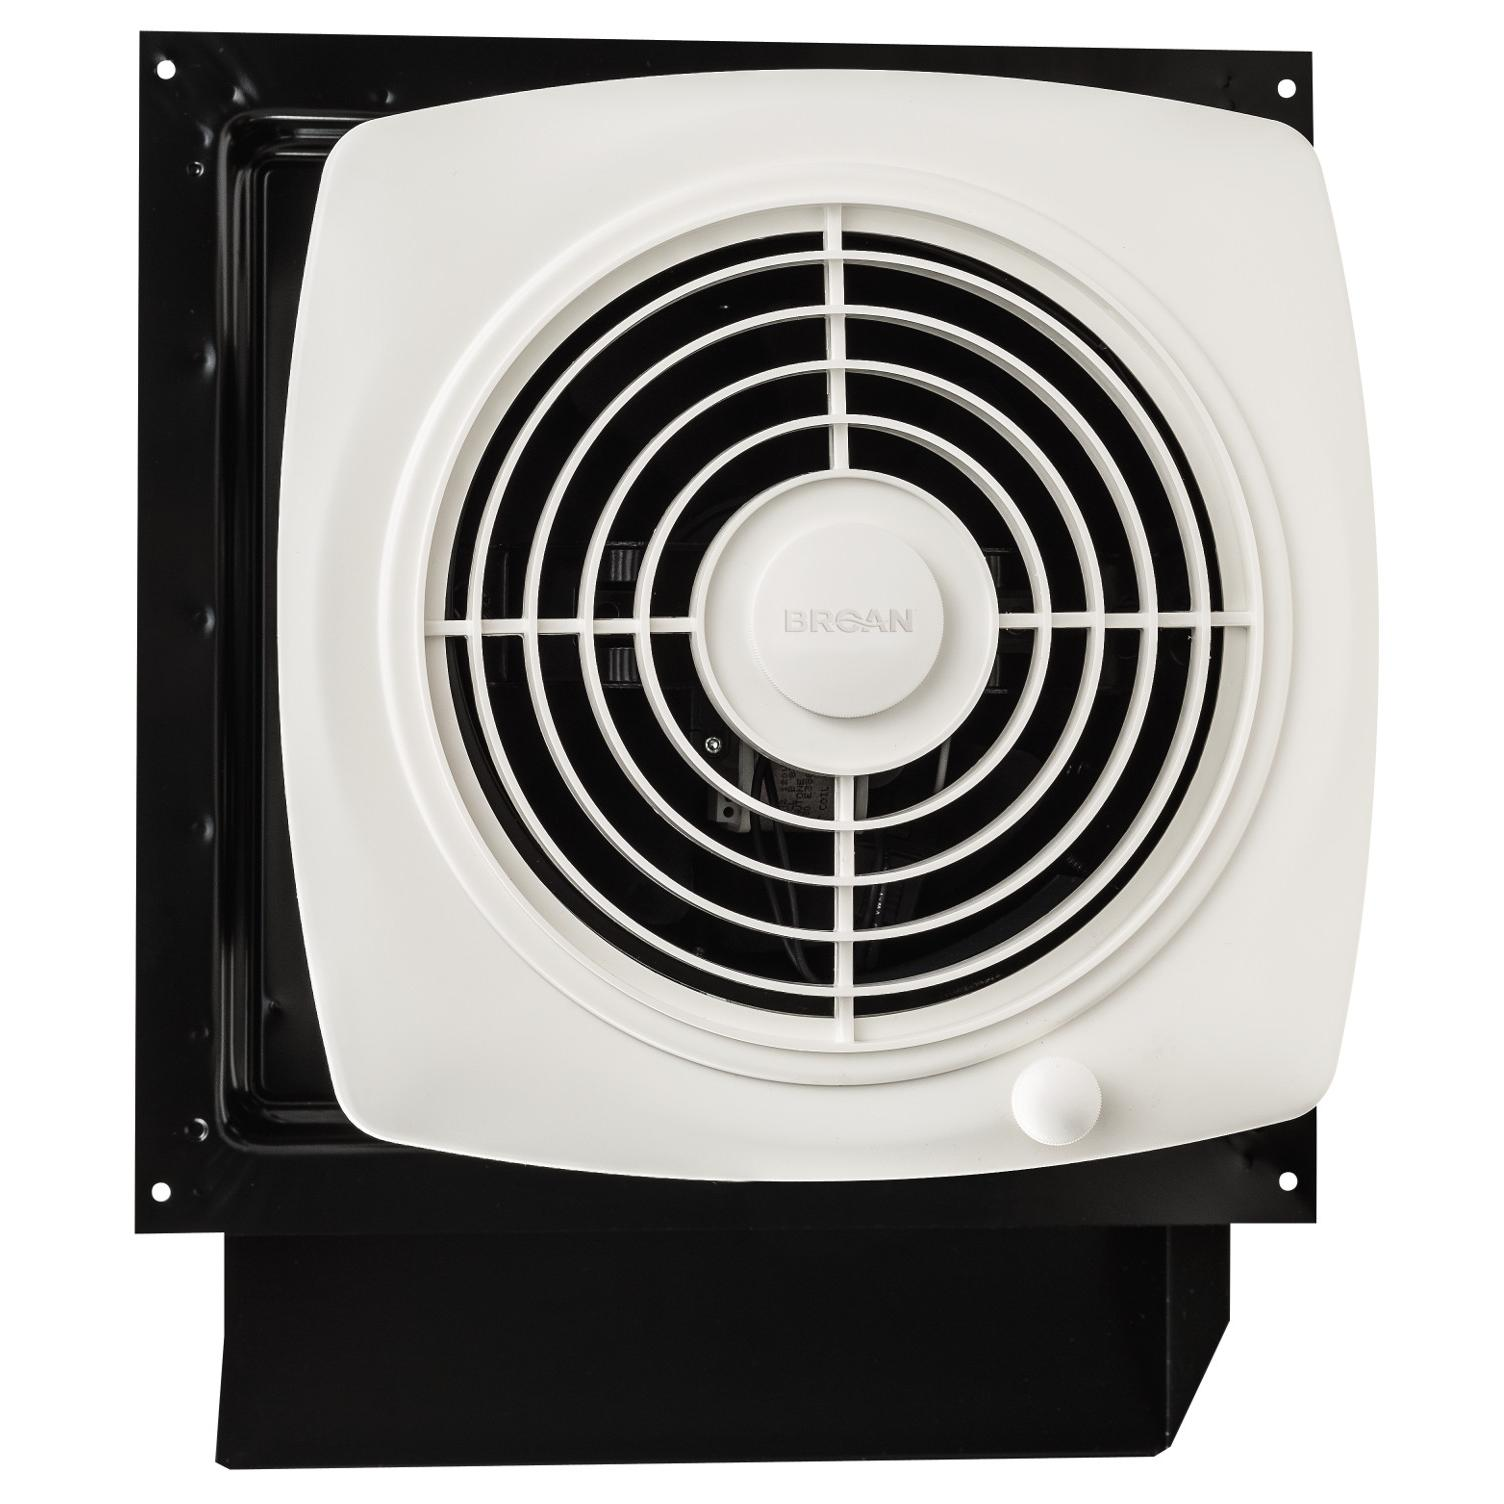 Broan fans website broan heat vent light broan fan nutone for 2 bathroom exhaust fan venting